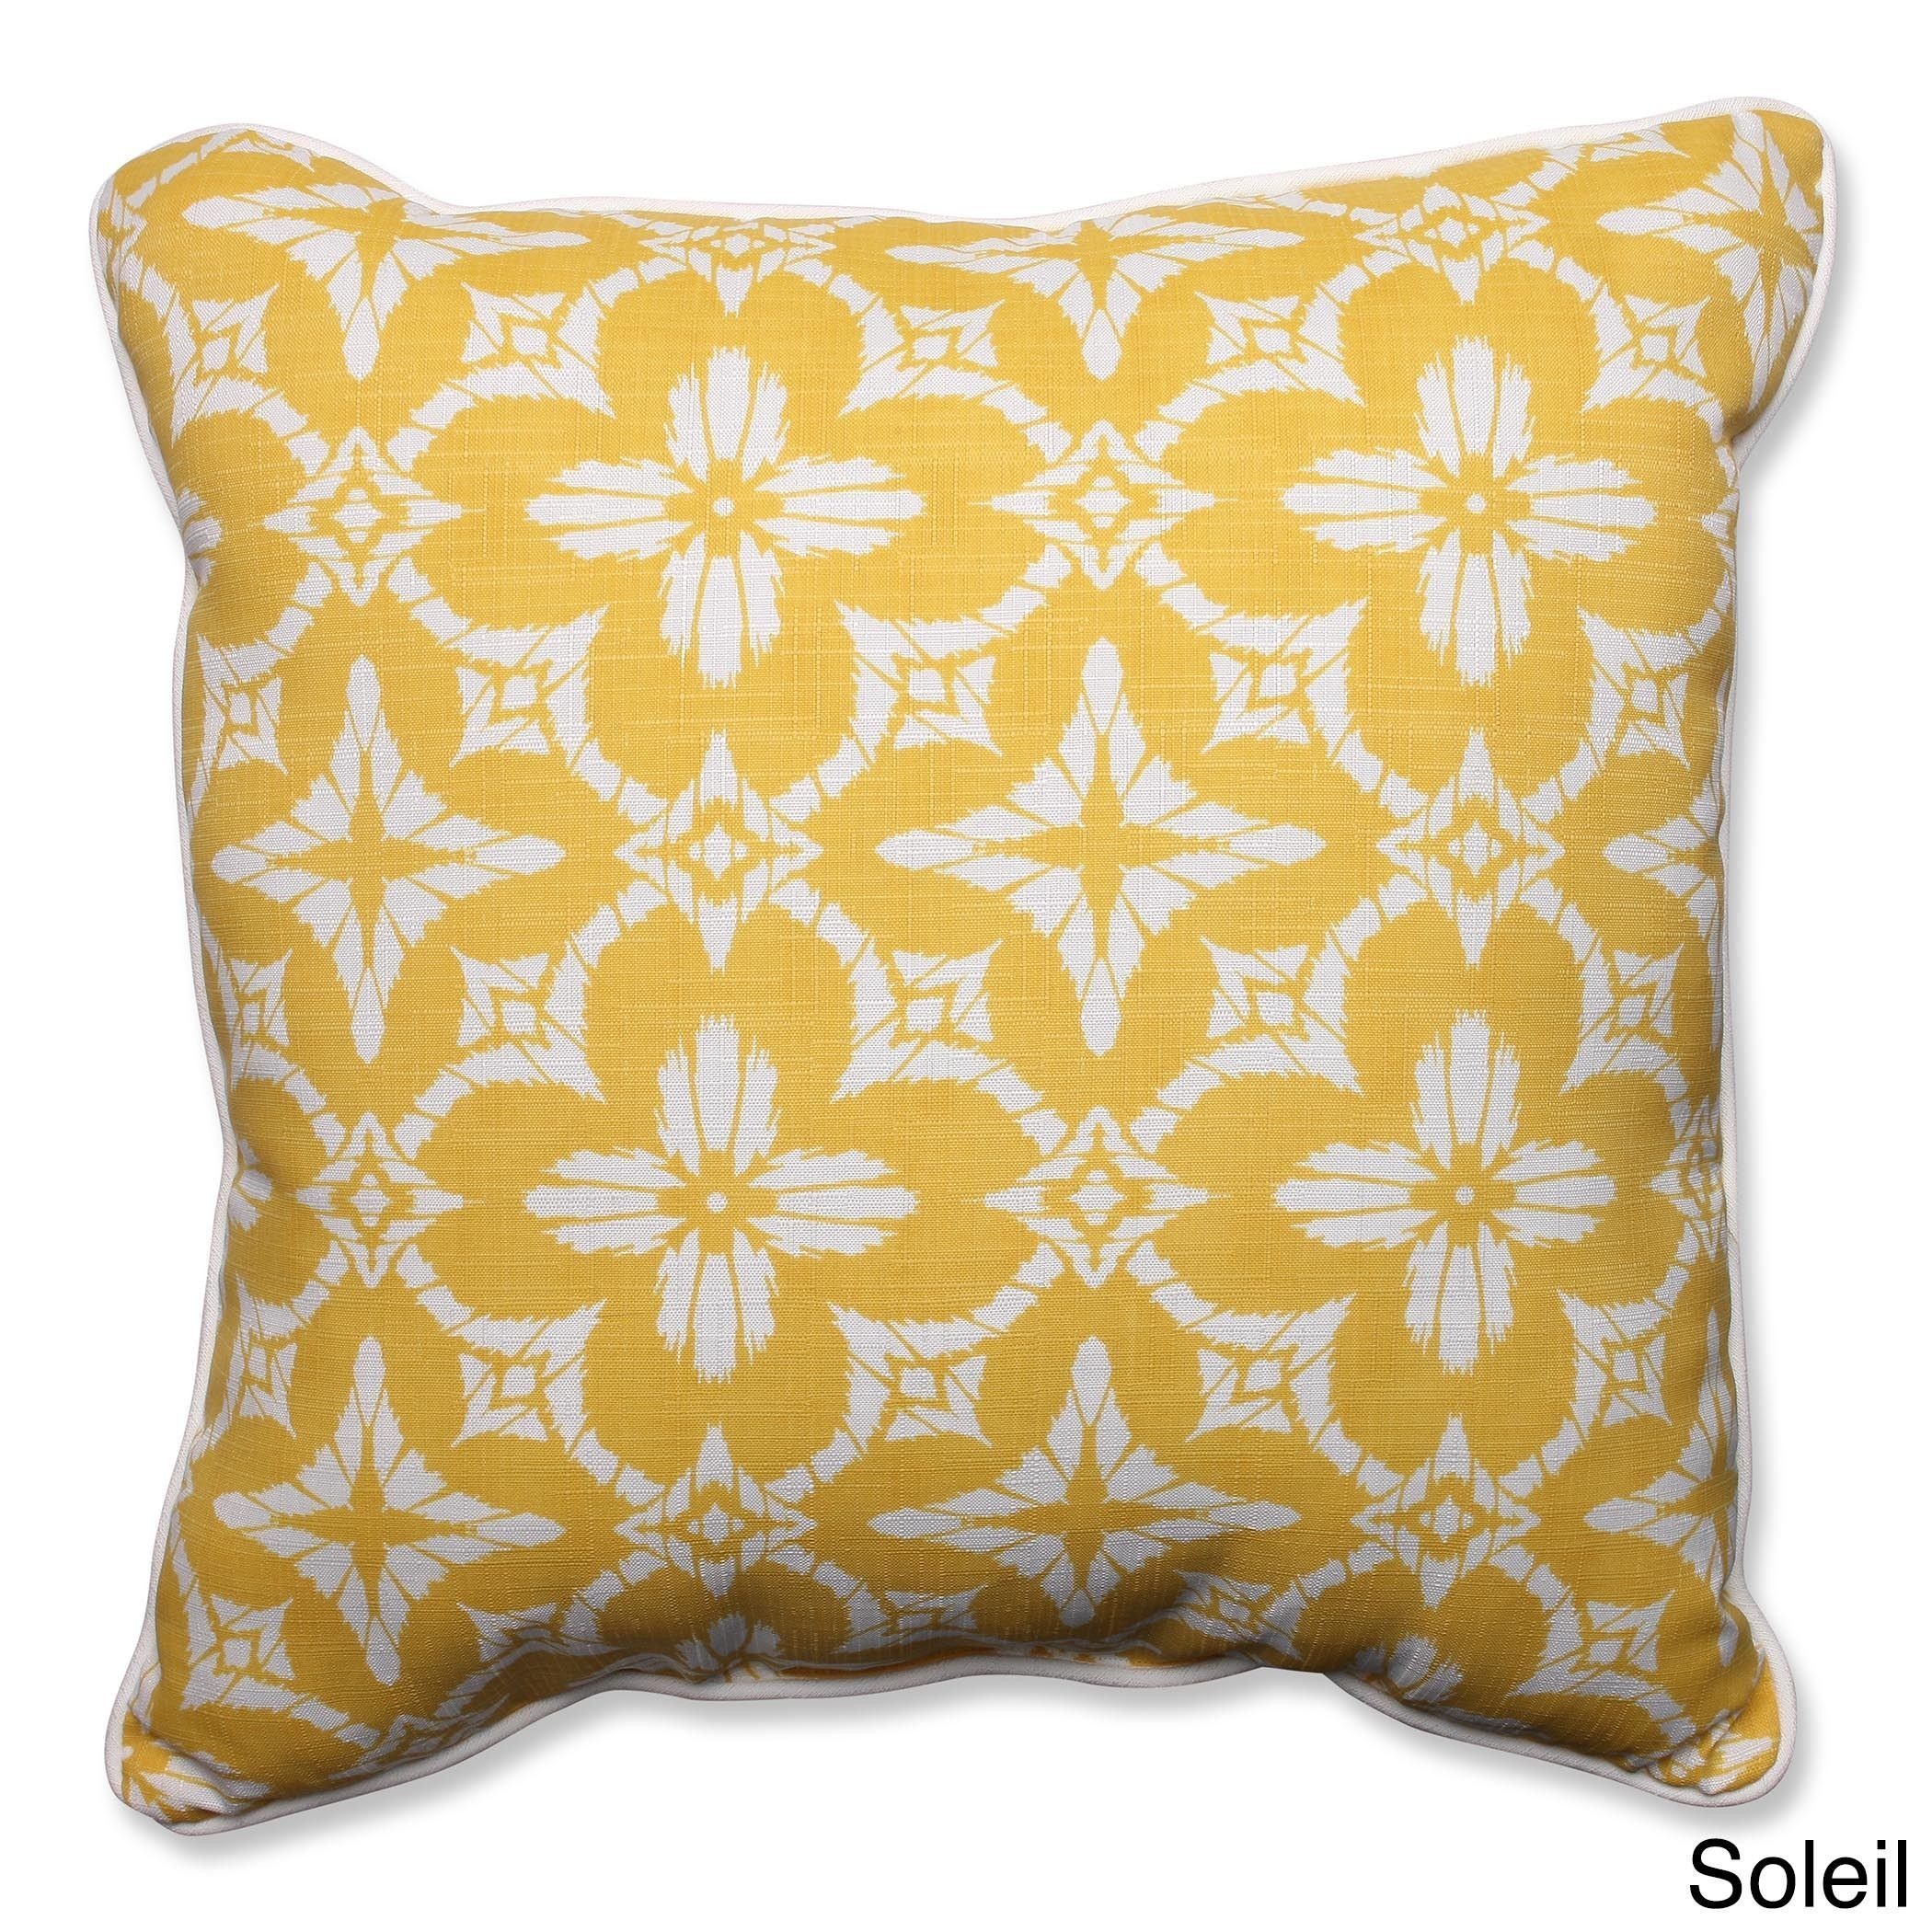 Pillow Perfect Outdoor/ Indoor Aspidoras 25-inch Floor Pillow (Soleil), Yellow (Polyester), Outdoor Cushion